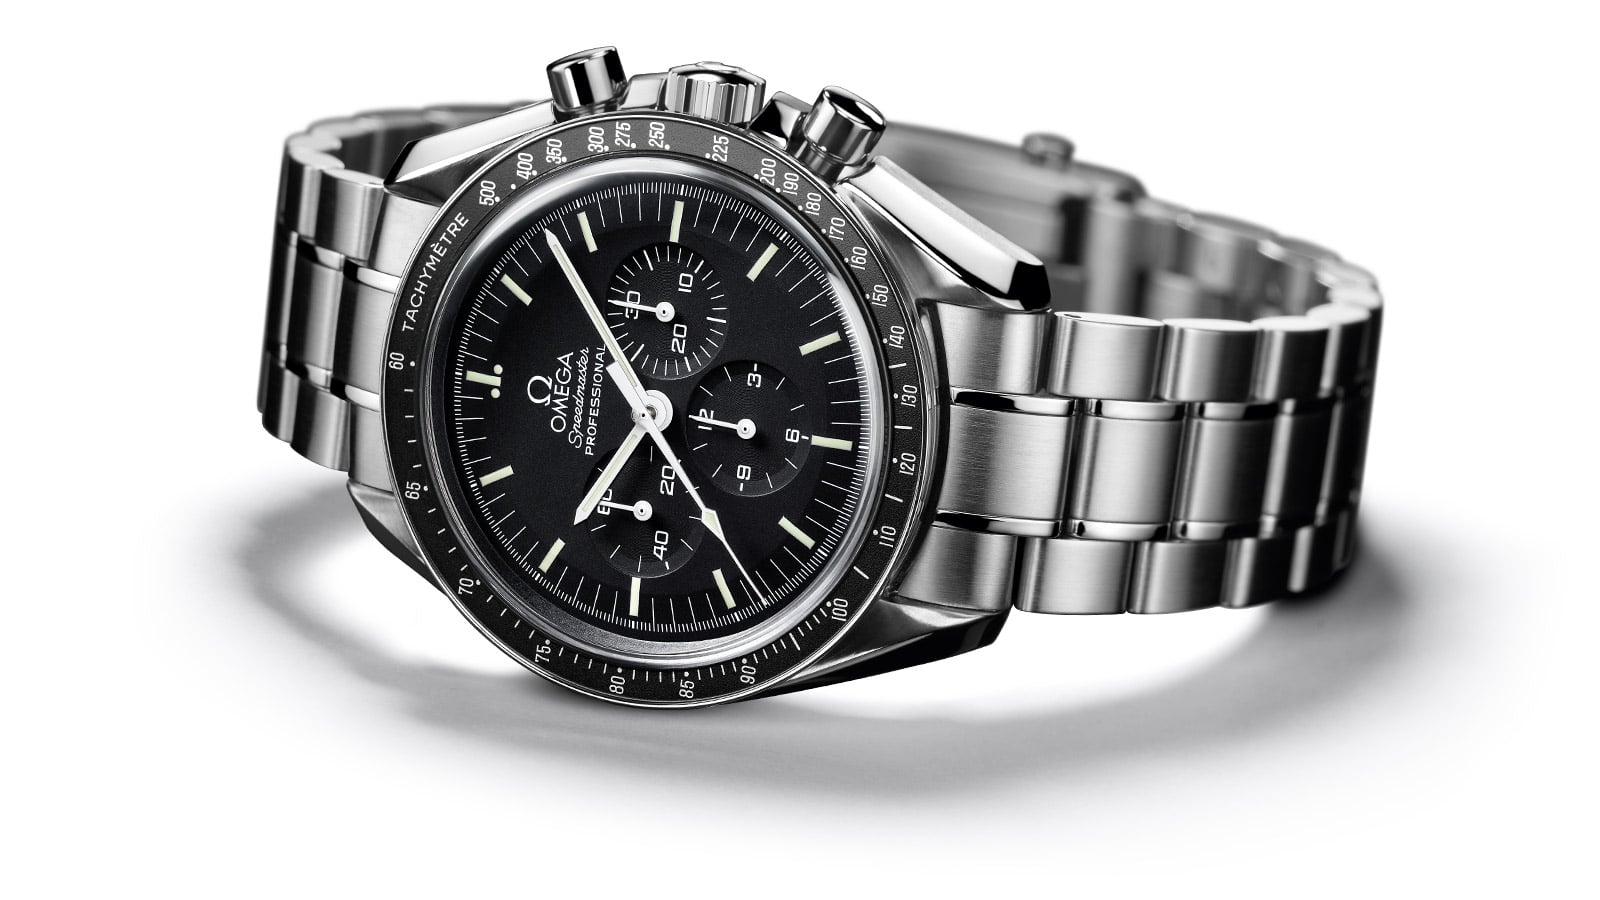 THE SPEEDMASTER PROFESSIONAL MOONWATCH